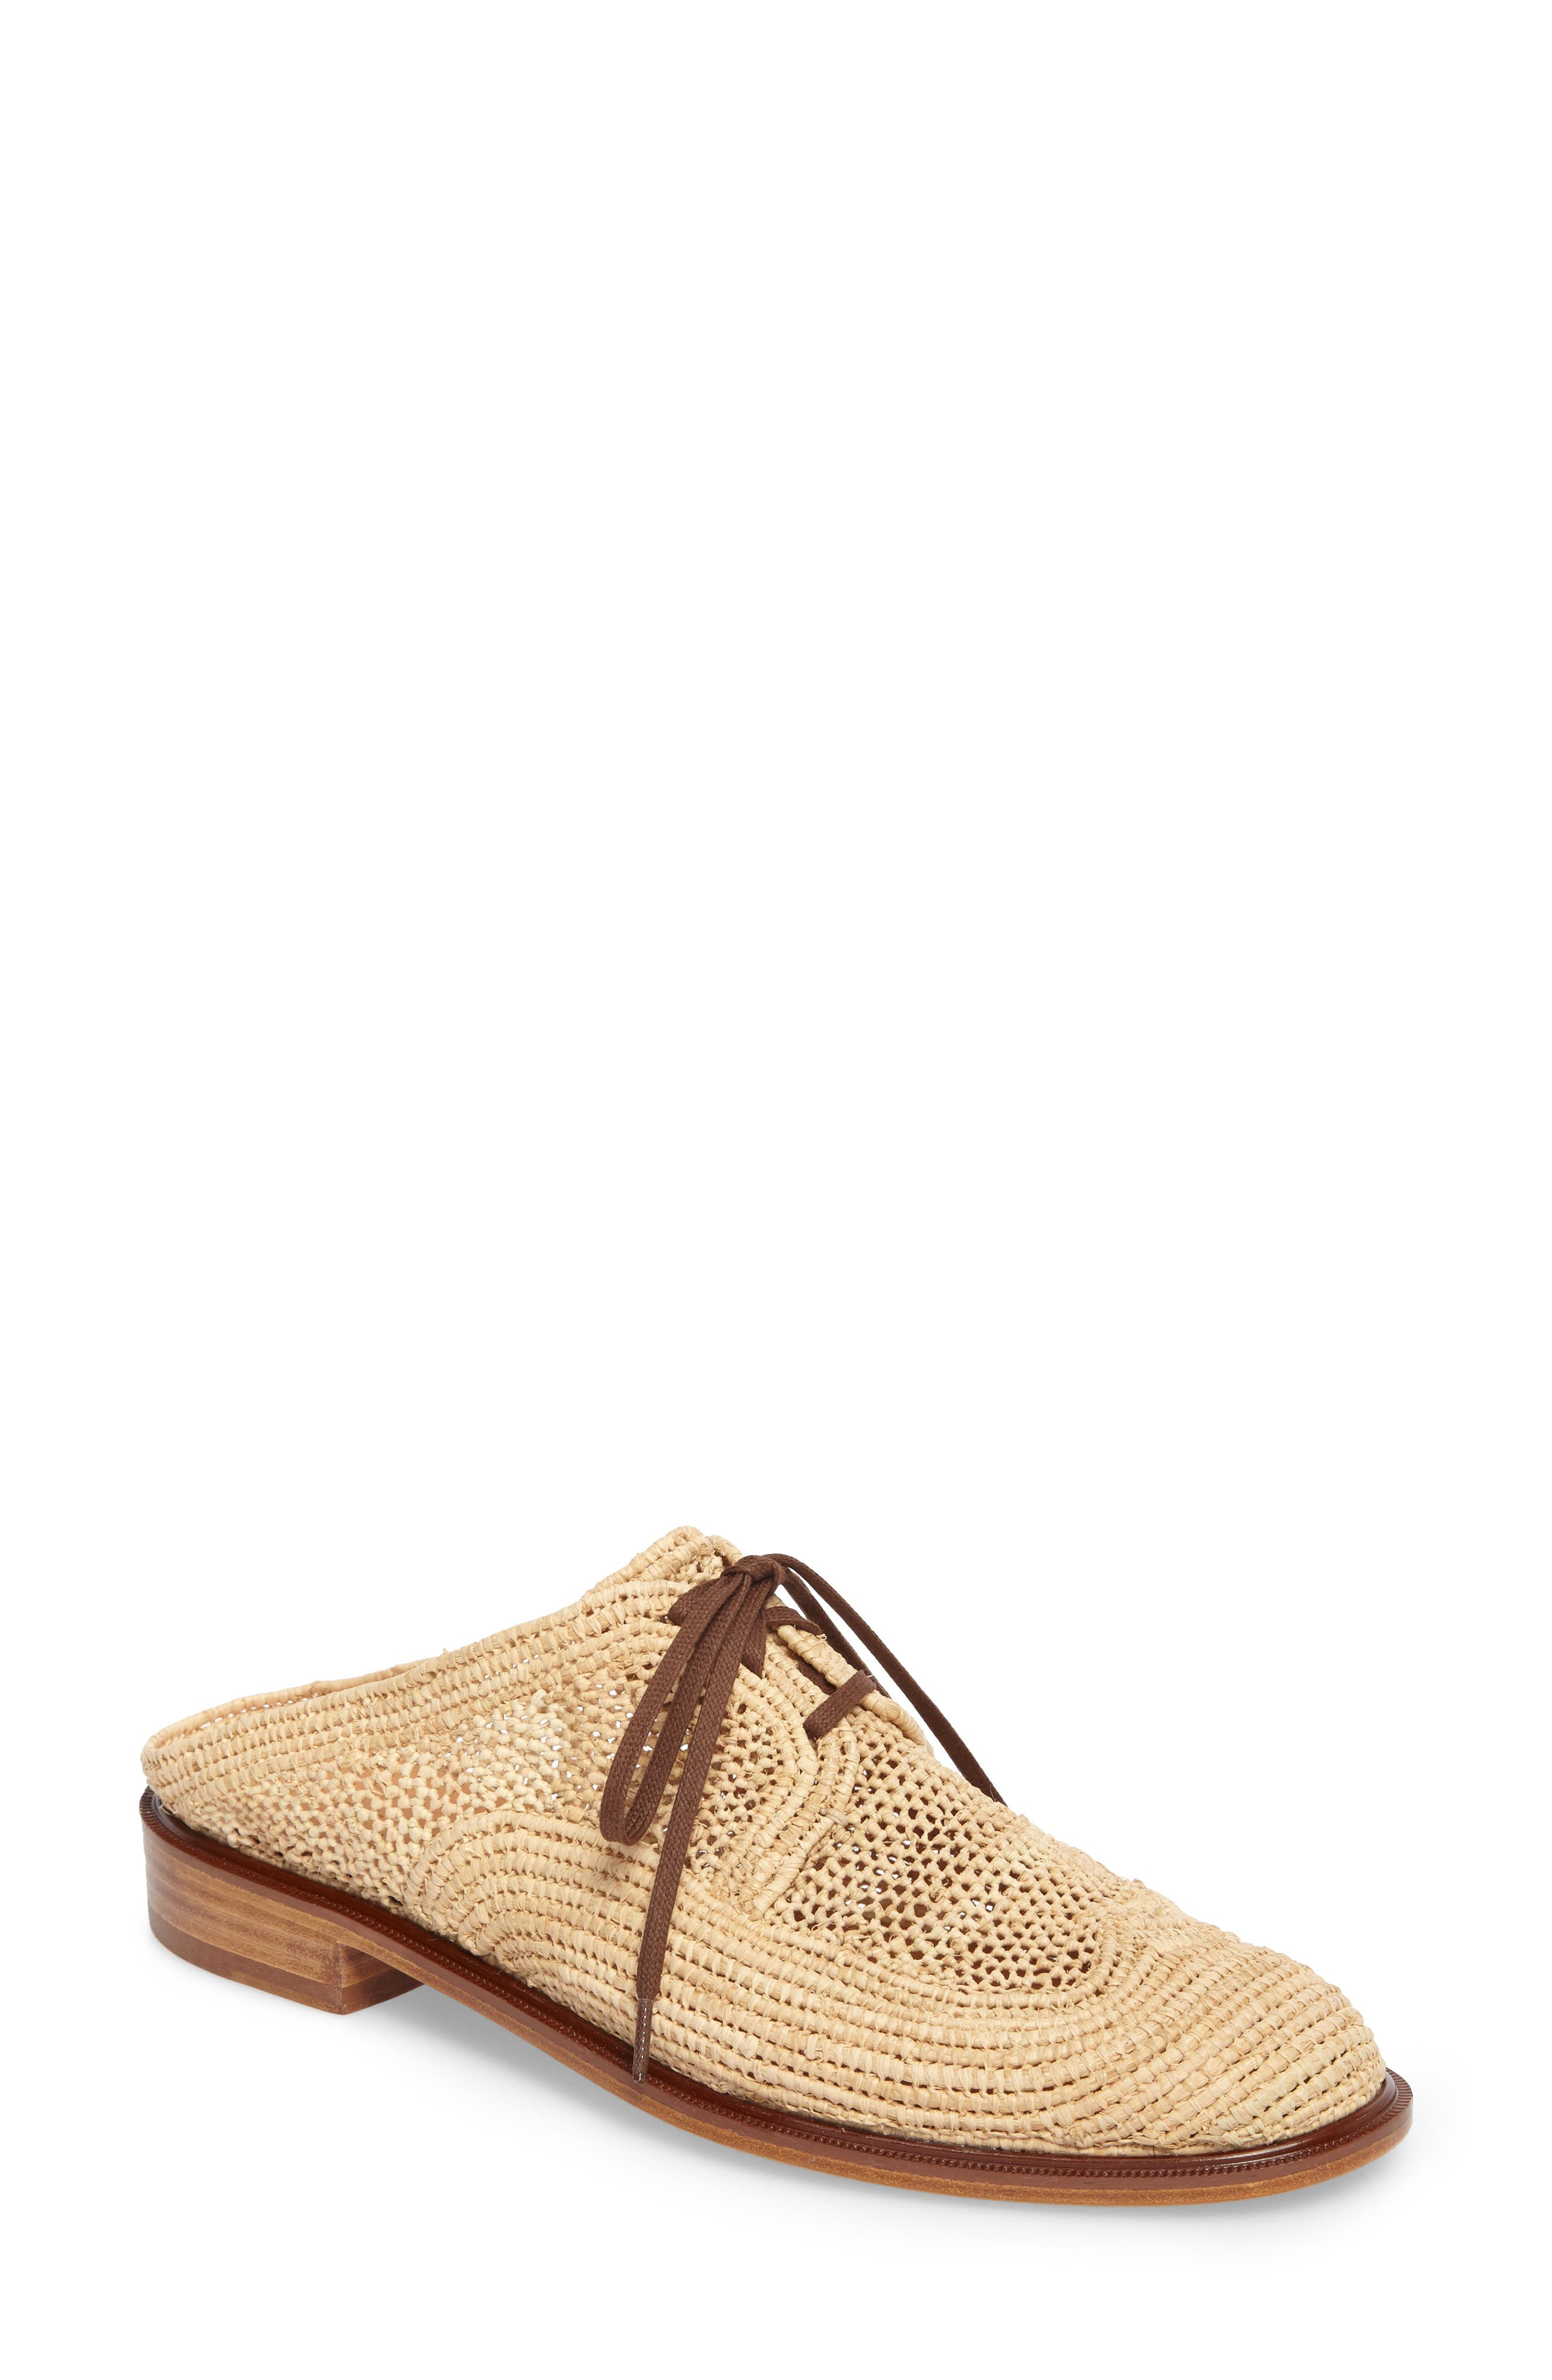 Jaly Woven Loafer Mule,                         Main,                         color, 250